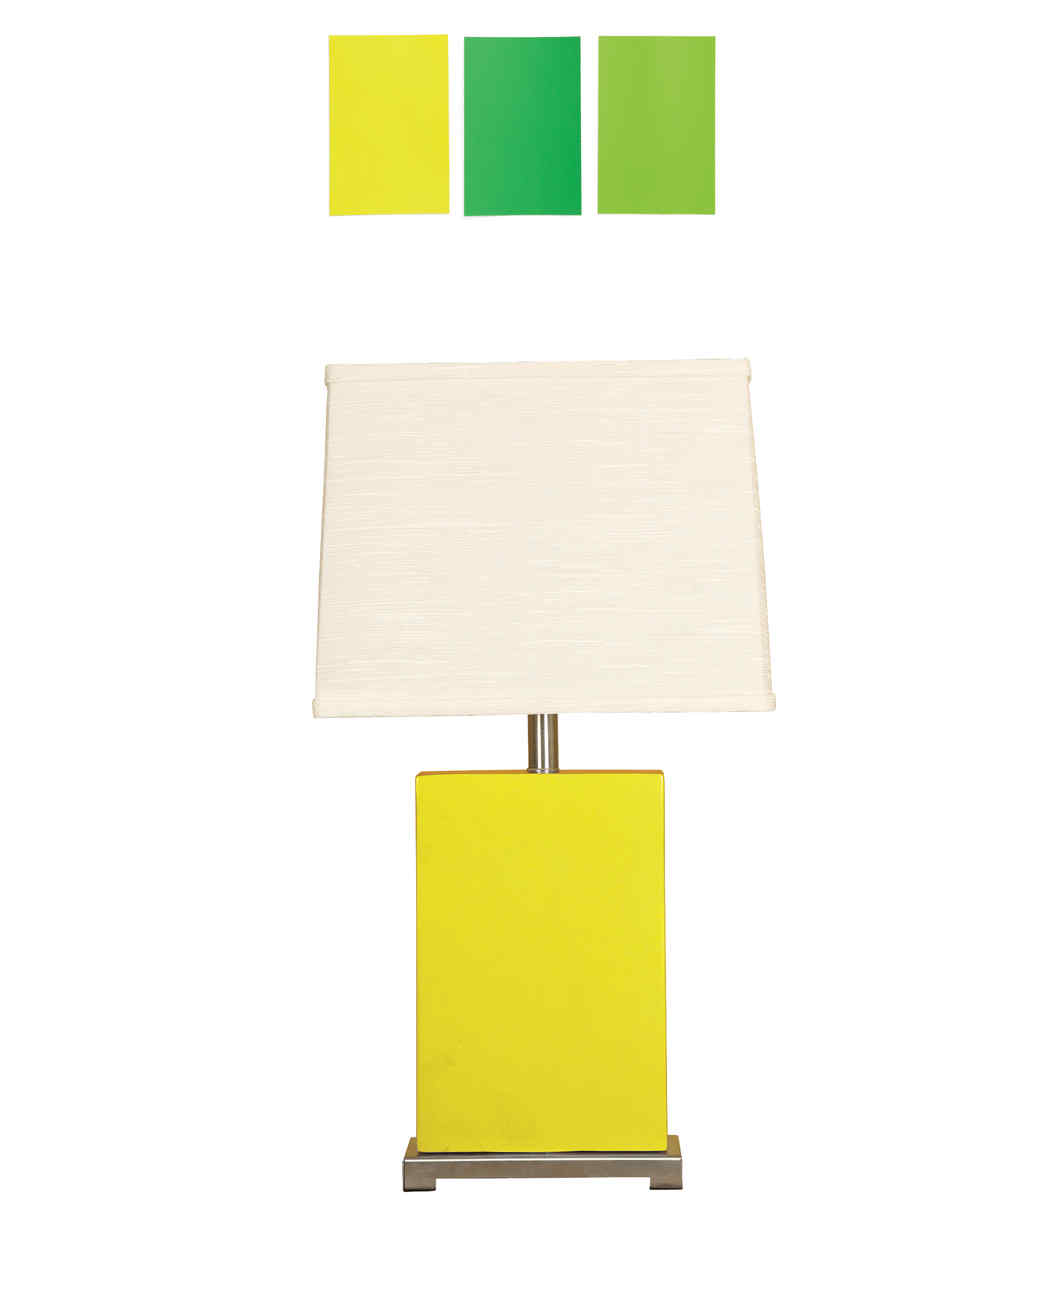 colorblocked-block-table-lamp-ms108570.jpg